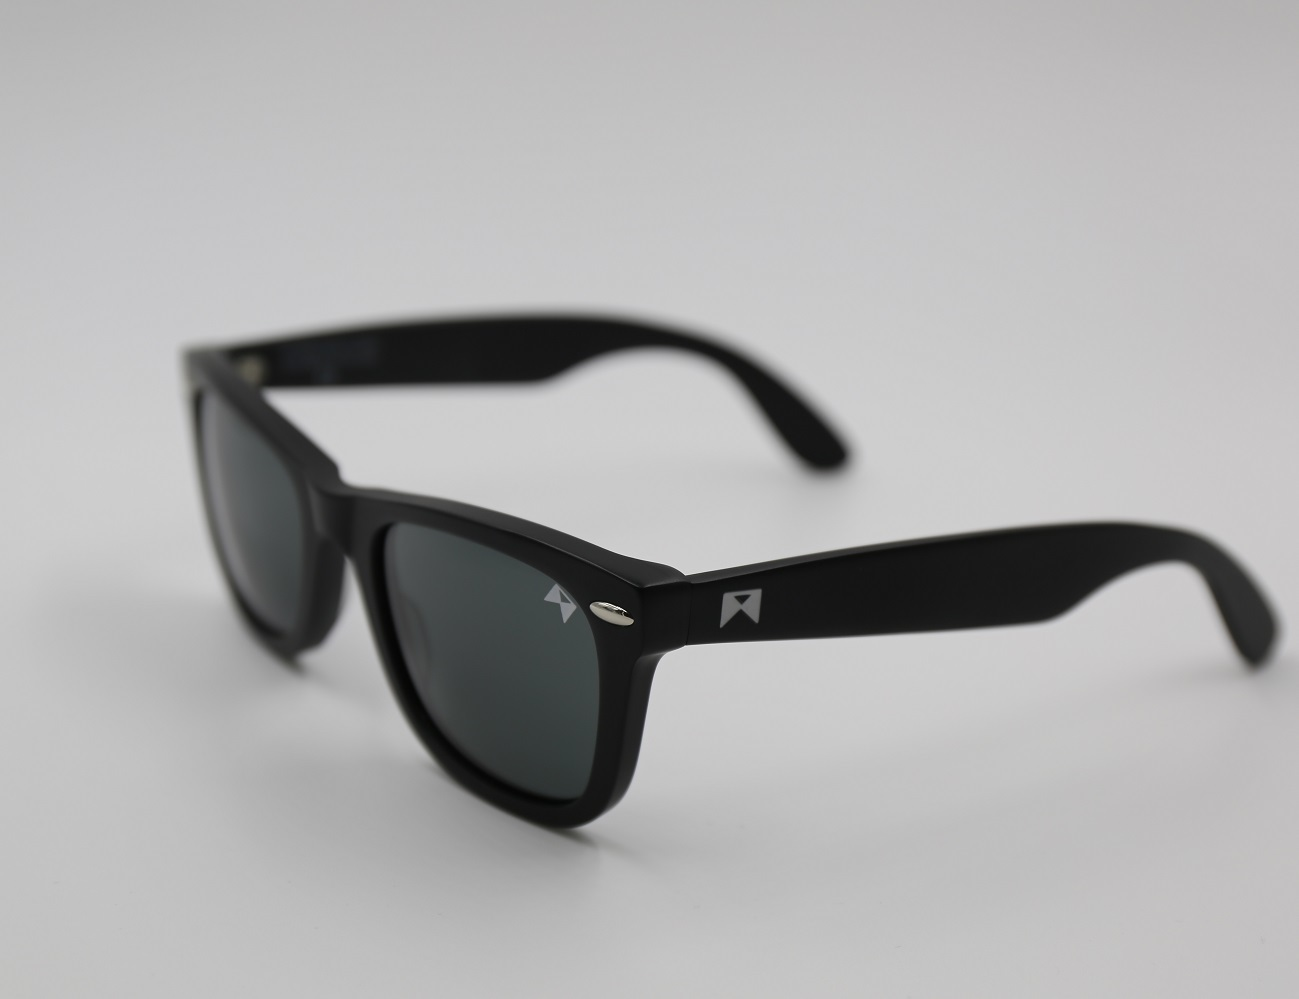 Titanium Bottle Opening Sunglasses by William Painter